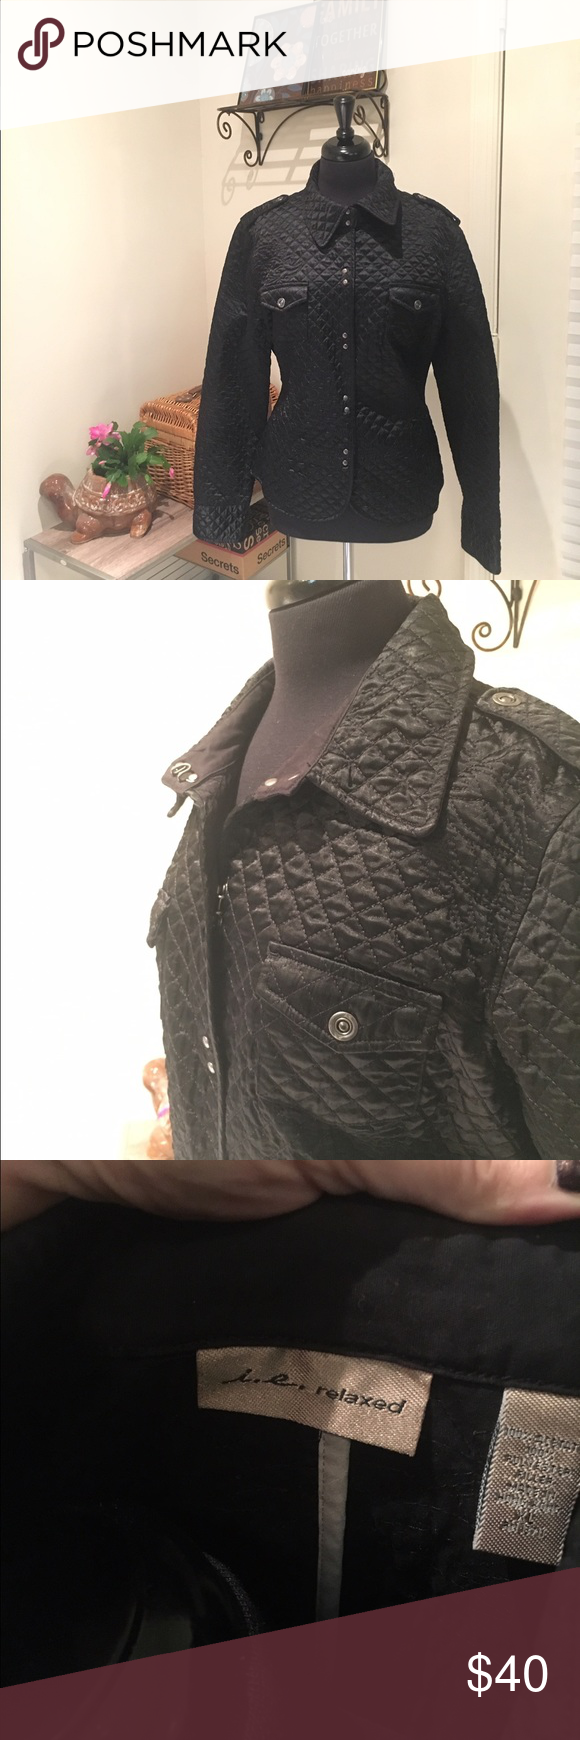 Quilted jacket I. E. relaxed size XL black quilted jacket. In excellent condition i. e.  Jackets & Coats